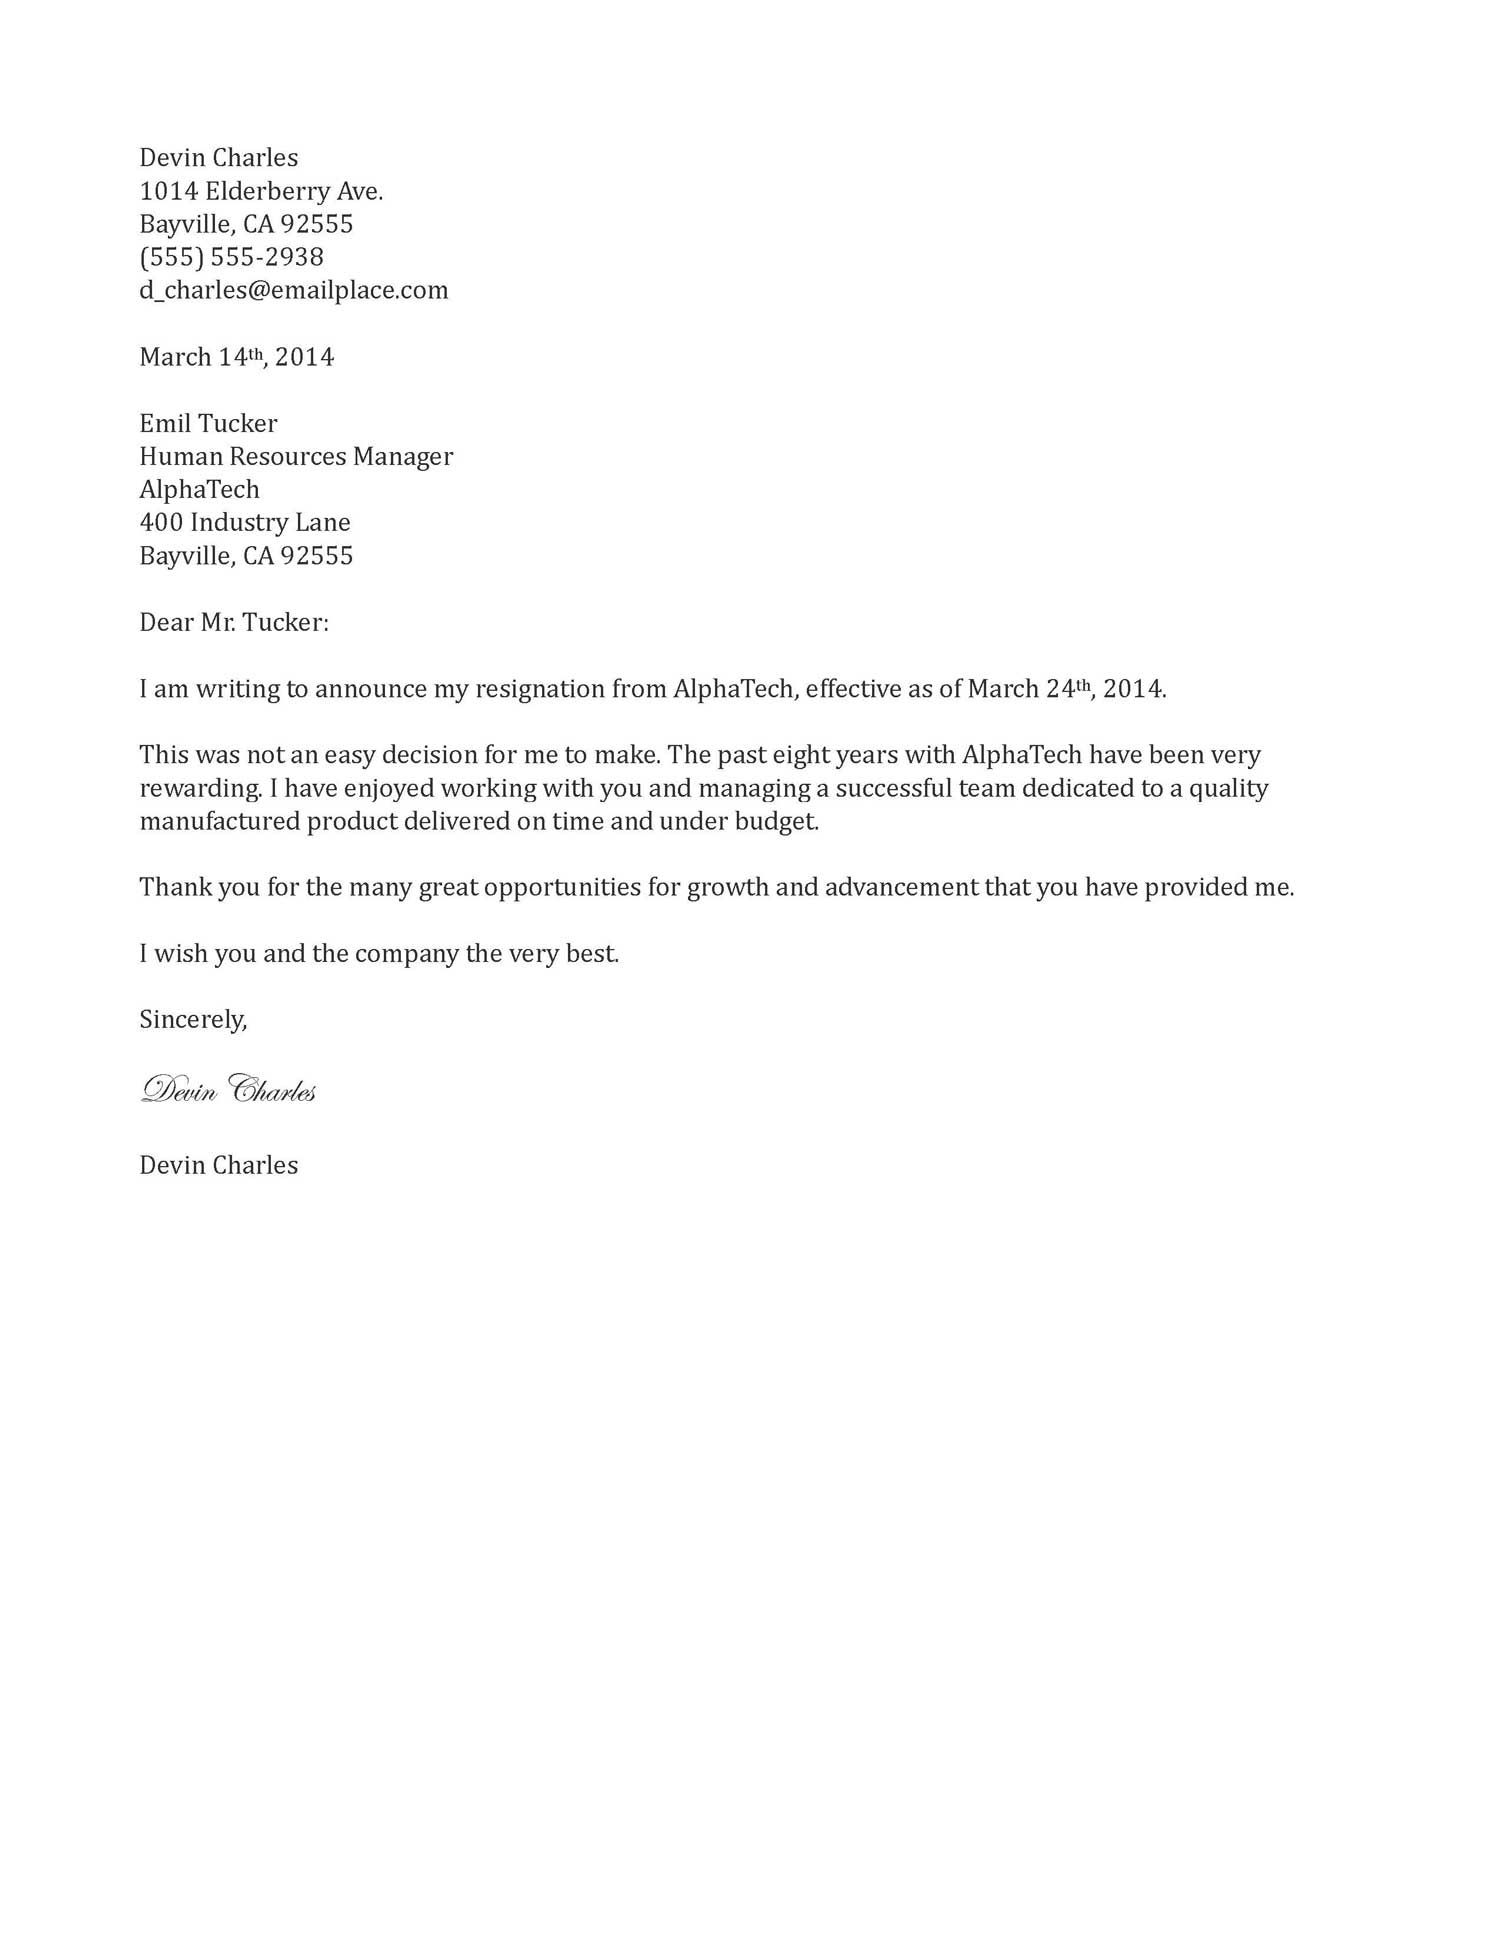 resignation letter job pinterest resignation letter resignation template and job offer